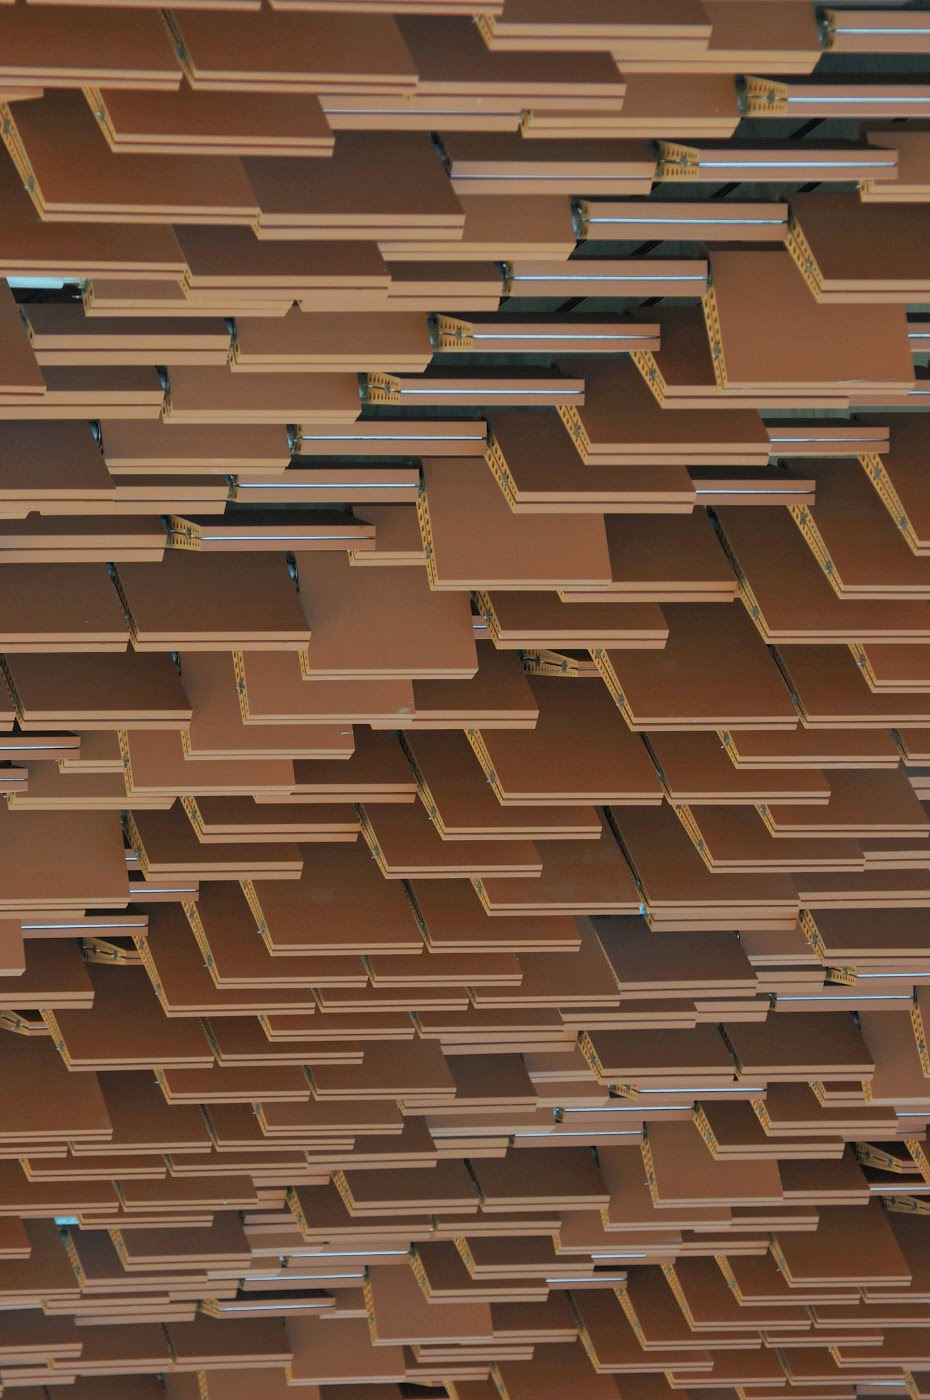 Abstract, abstraction, abstractional, graphic, graphical, detail, postmodern, postmodernist, façade, architecture, architectural, Tim Macauley, the light monkey collective, new, stunning, amazing, I now know what it's like to live in a jukebox, Australia, Australian, Richard Kirk Architect, hassell, advanced engineering building, aeb, The University of Queensland, st lucia,